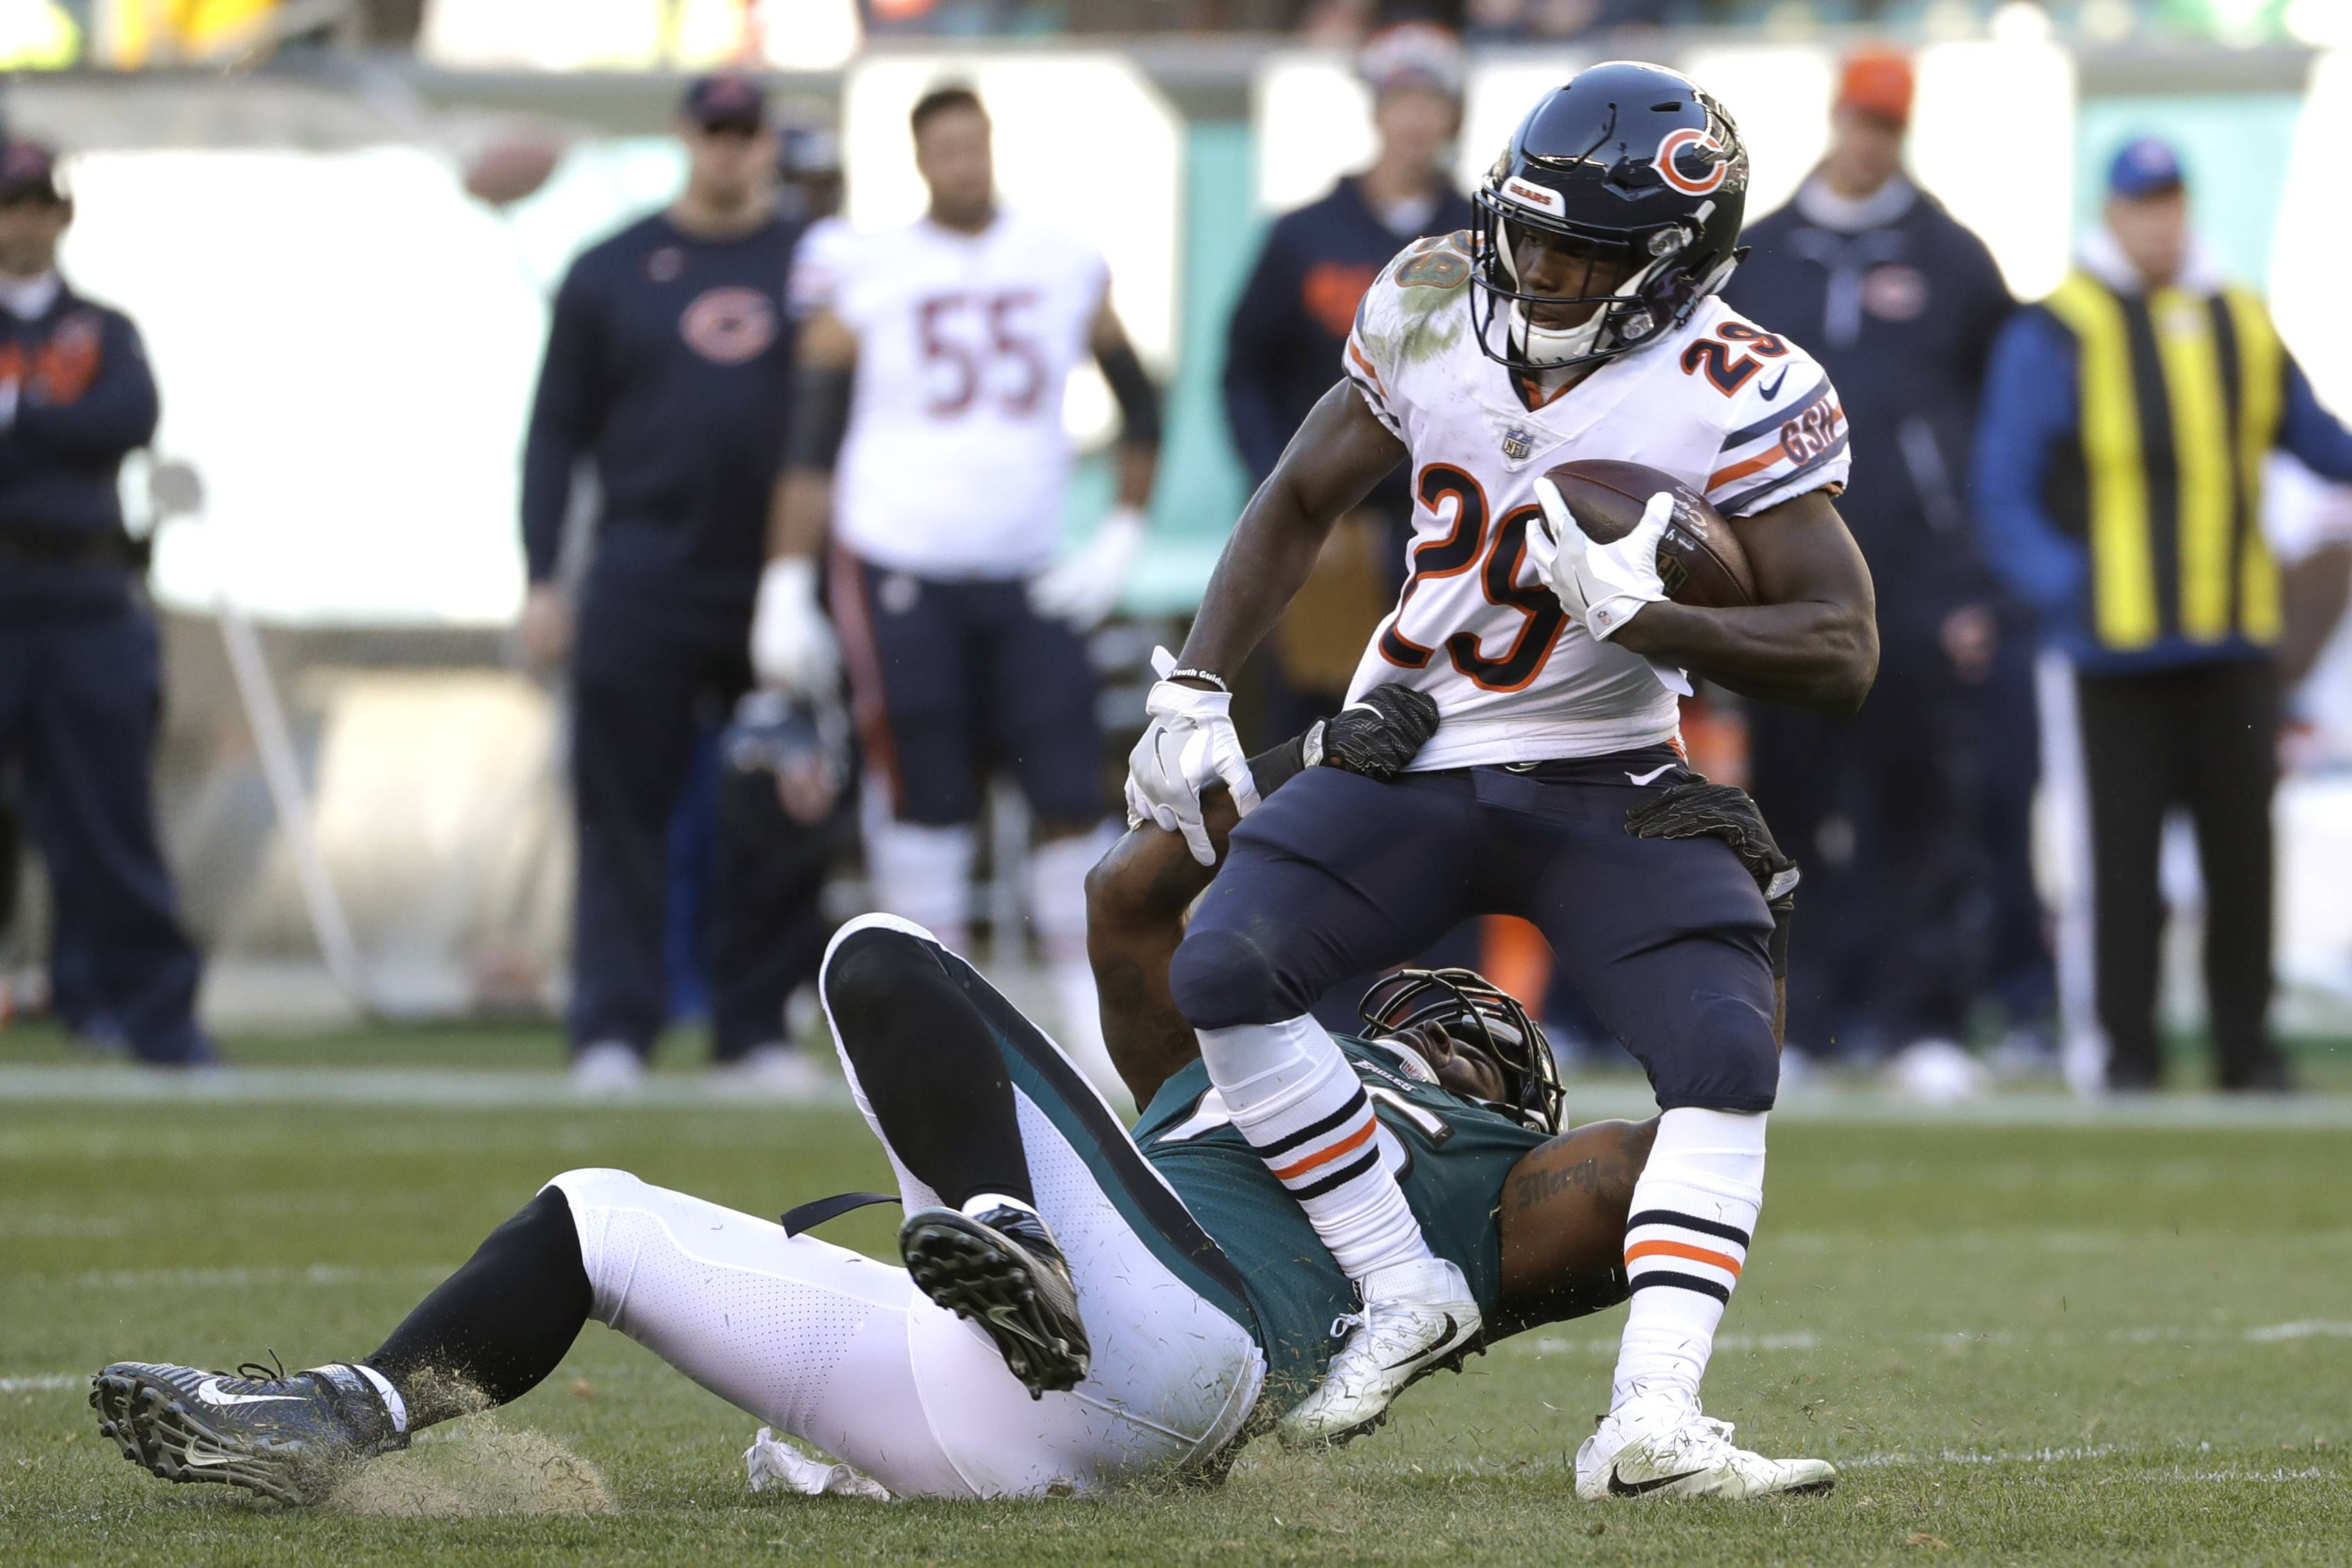 Chicago Bears' Tarik Cohen, right, is tackled by Philadelphia Eagles' Vinny Curry during the second half of an NFL football game, Sunday, Nov. 26, 2017, in Philadelphia.